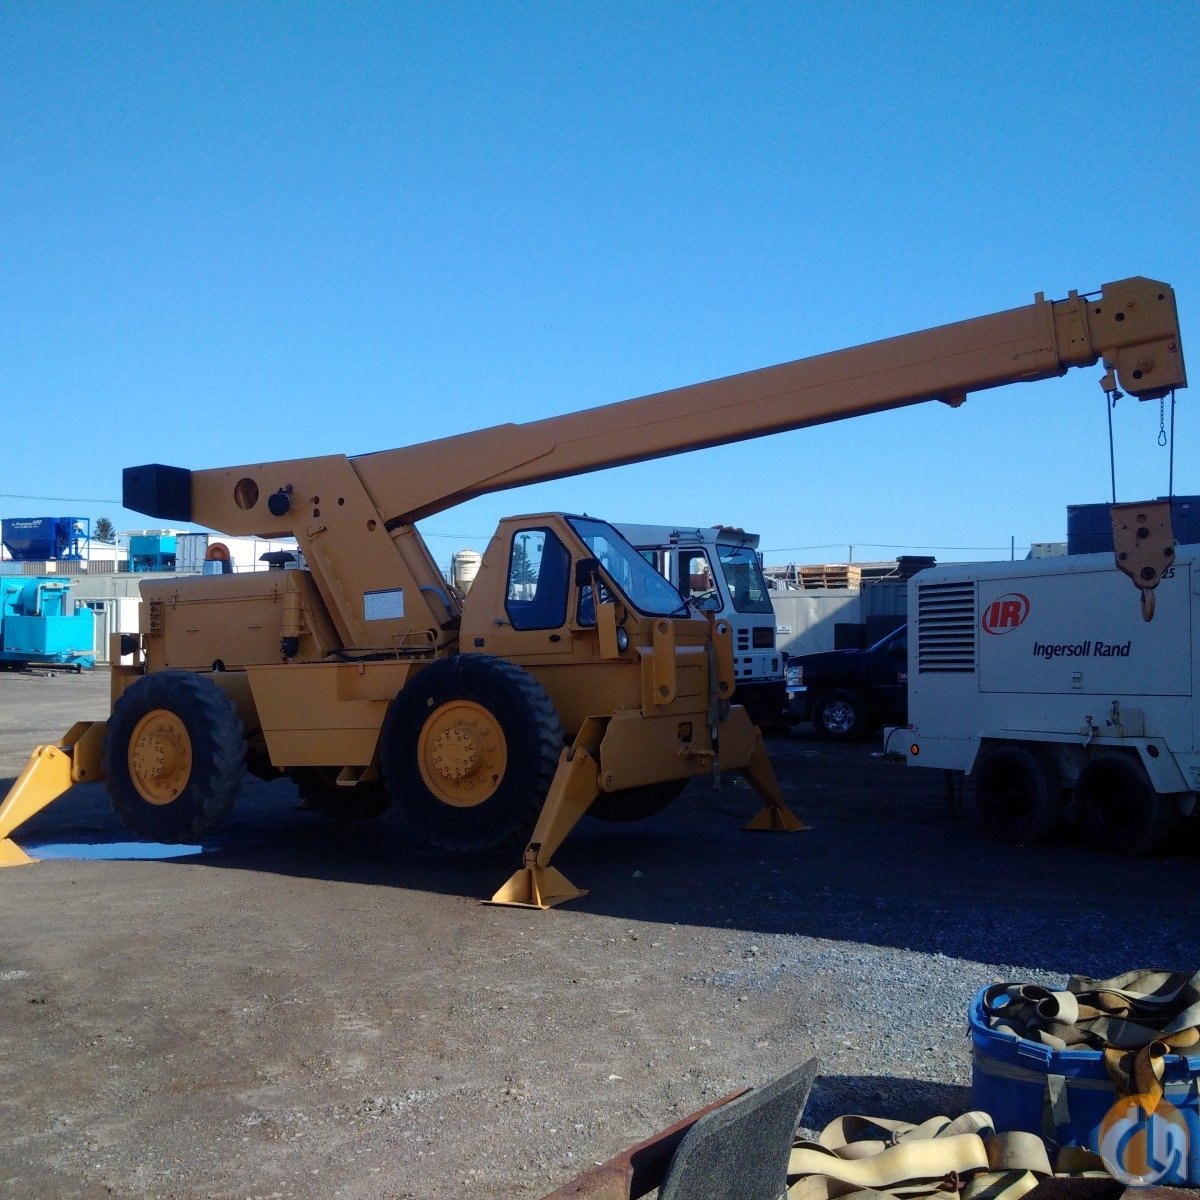 1984 Galion 80 Crane for Sale in Saint John New Brunswick on CraneNetwork.com